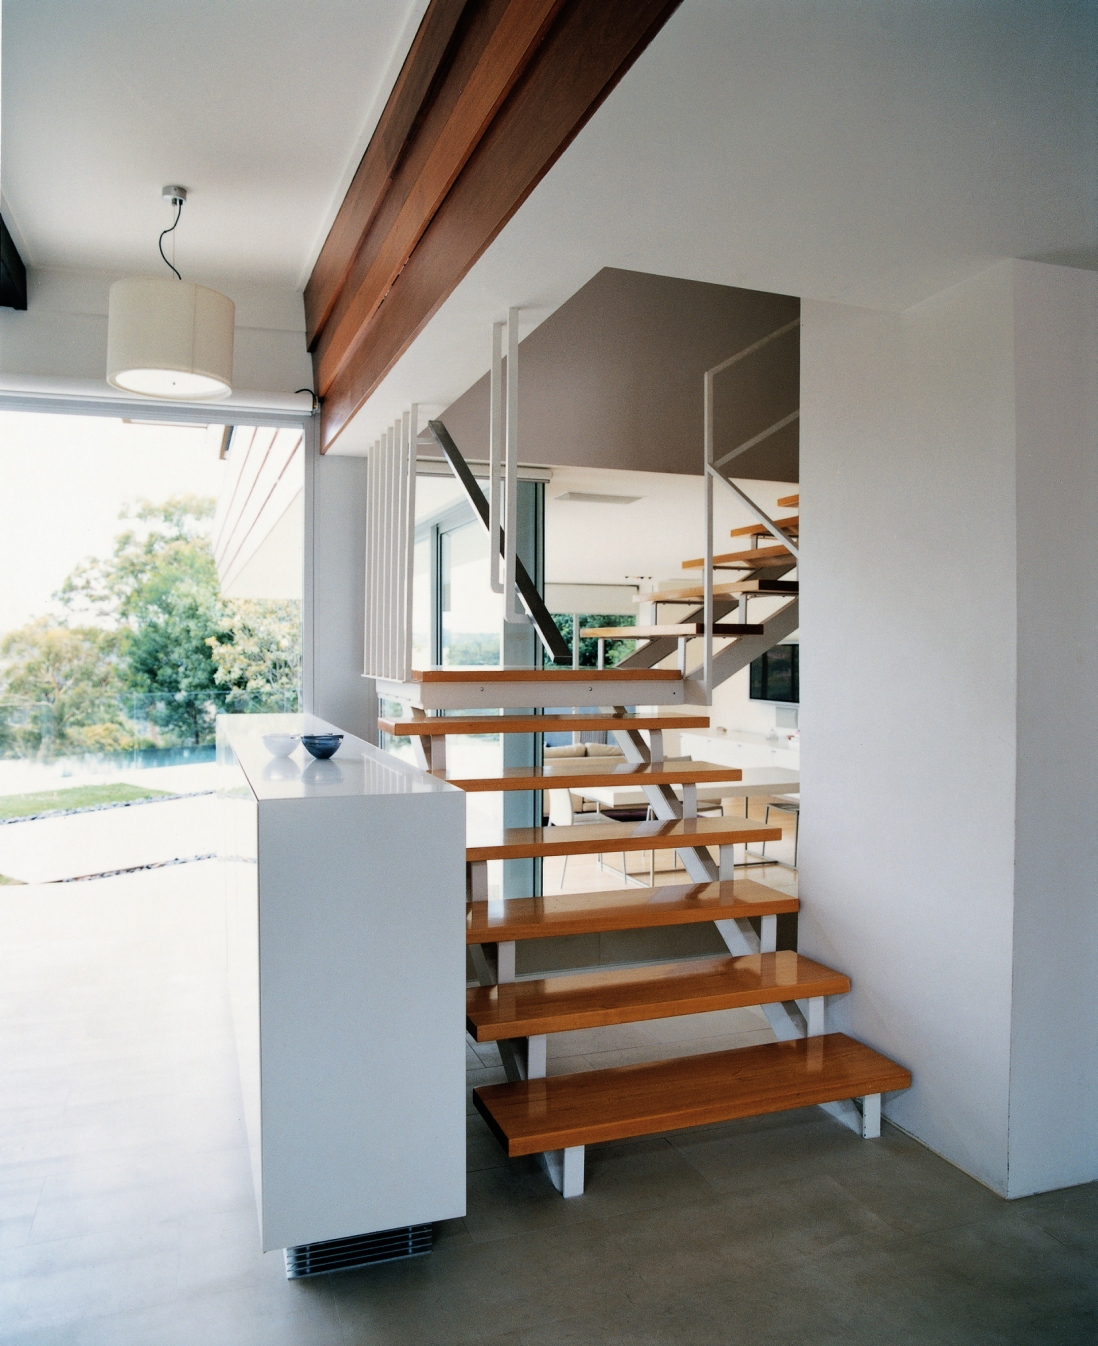 This is a photograph of a set of interior timber stairs on a white steel frame and open on each side